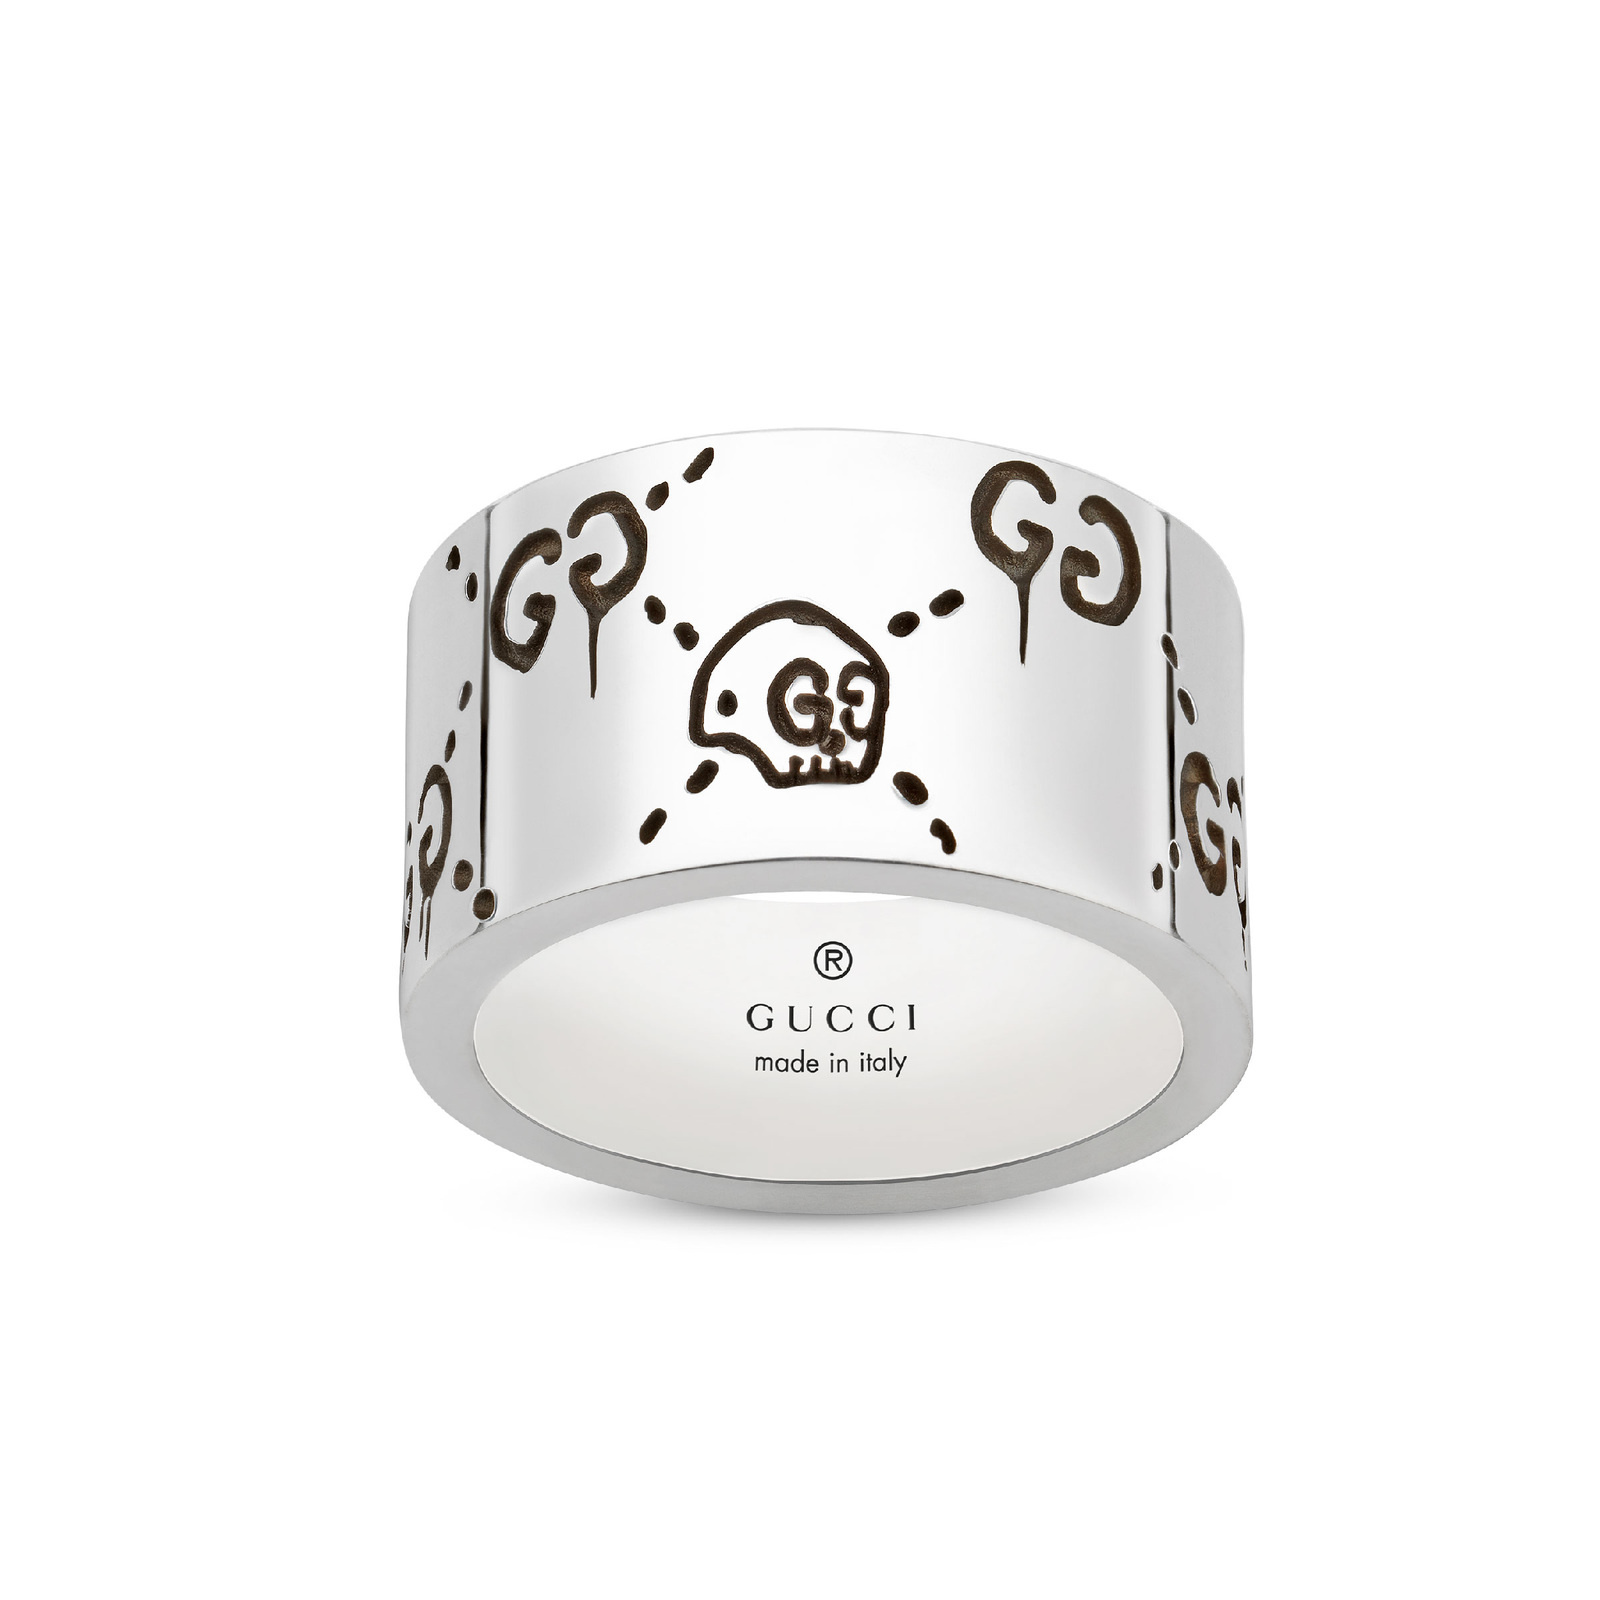 GucciGhost 12mm Ring in Silver - Ring Size K